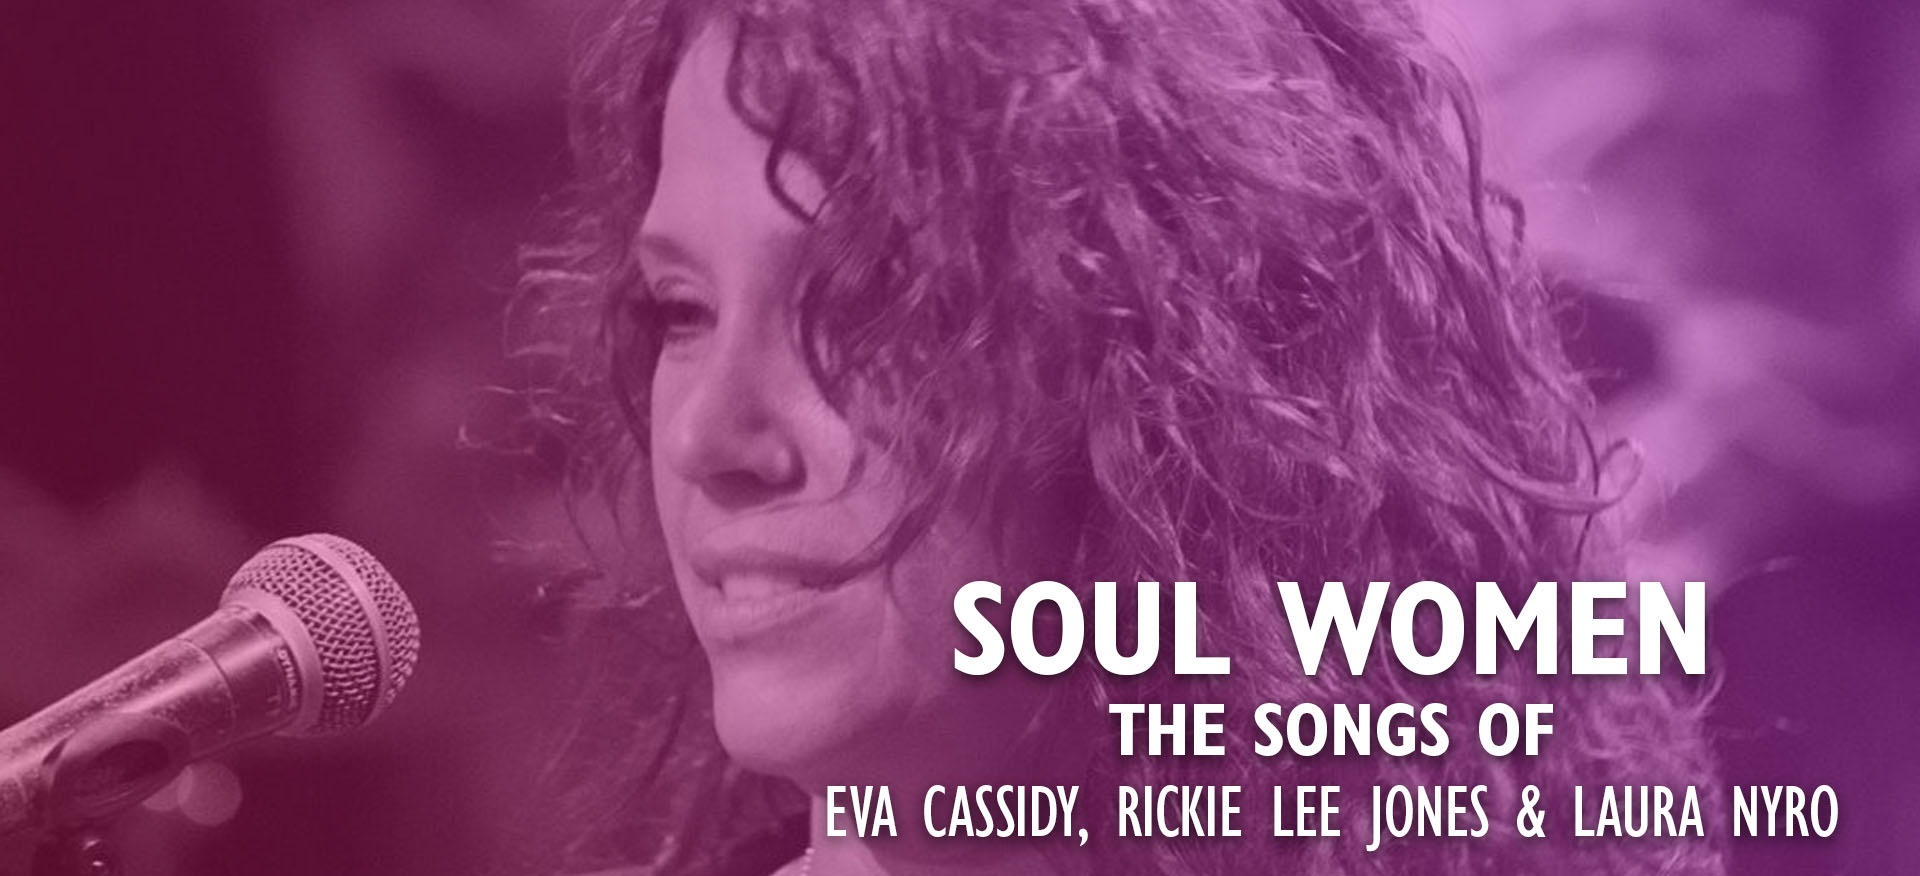 """Soul women - the music of Eva Cassidy, rickie lee jones & Laura Nyro - Cate Fierro follows this up with two of her frequent collaborators -- the vocalists Katie Gearty, and Leslie Ball – to bring us """"Soul Women,"""" celebrating Eva Cassidy, Laura Nyro and Rickie Lee Jones on Friday, Mar 8"""